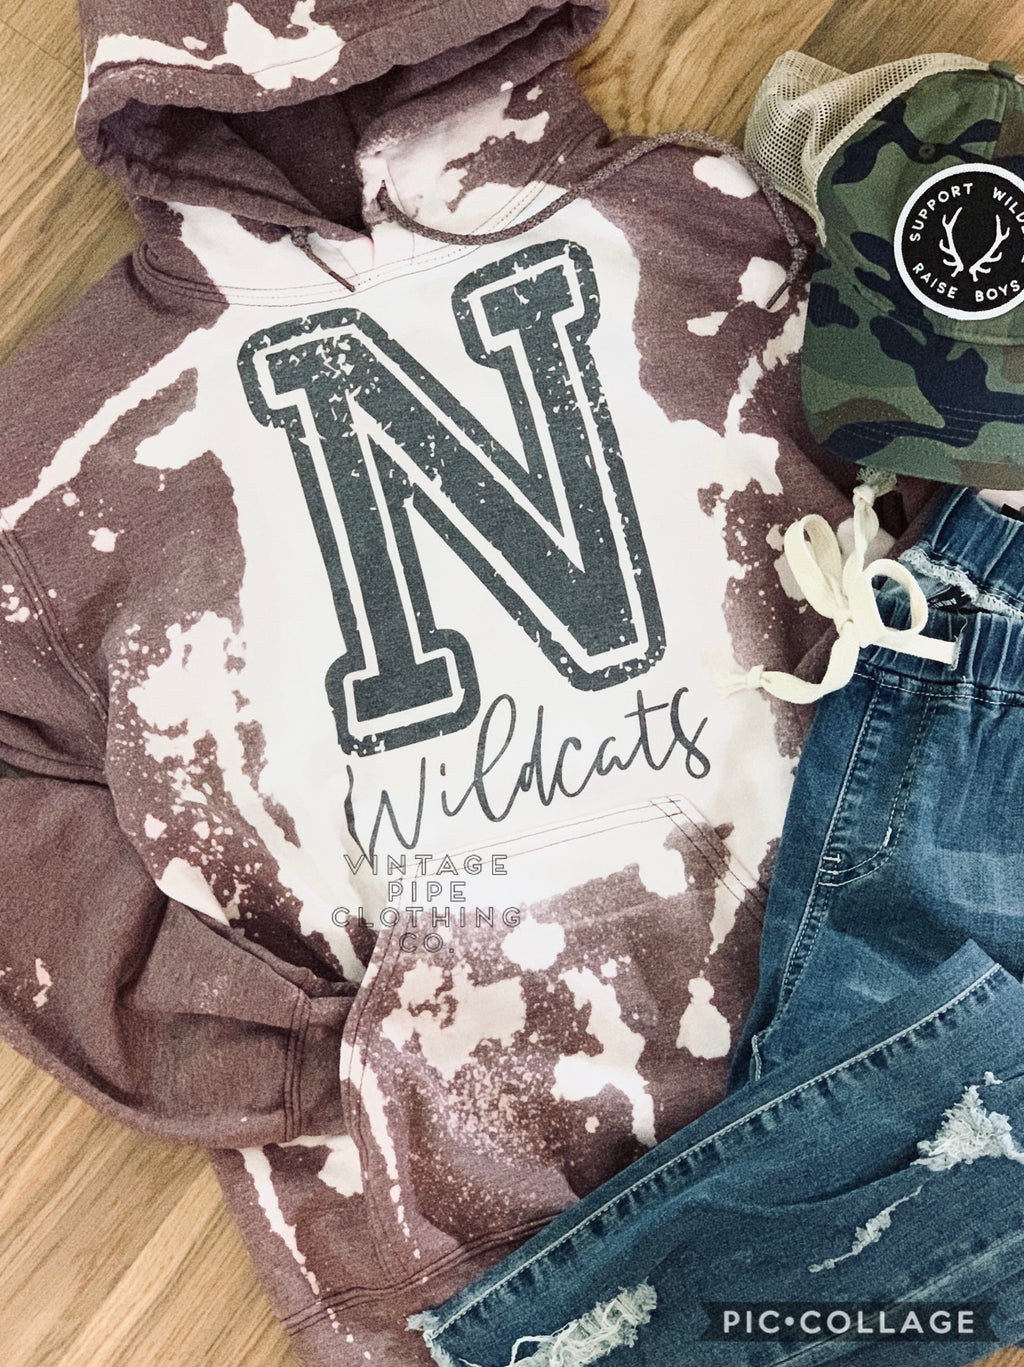 Bleached NEWARK WILDCATS Sweatshirts and Tees